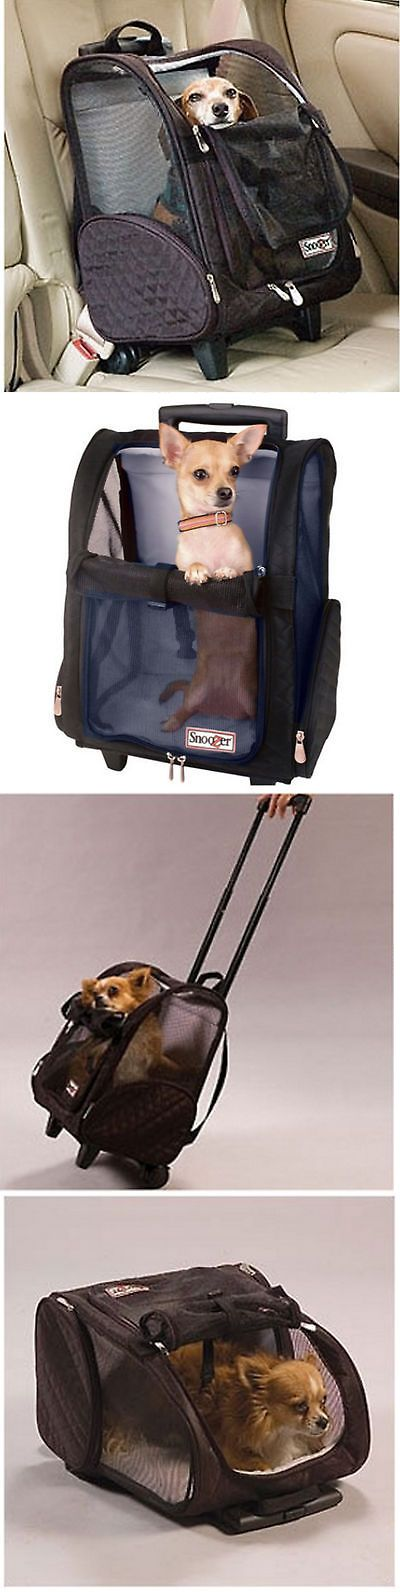 Carriers and Totes 177788: Pet Carrier Cat Dog Travel Bag Soft Sided Airline Approved Portable Rolling Dude BUY IT NOW ONLY: $167.99